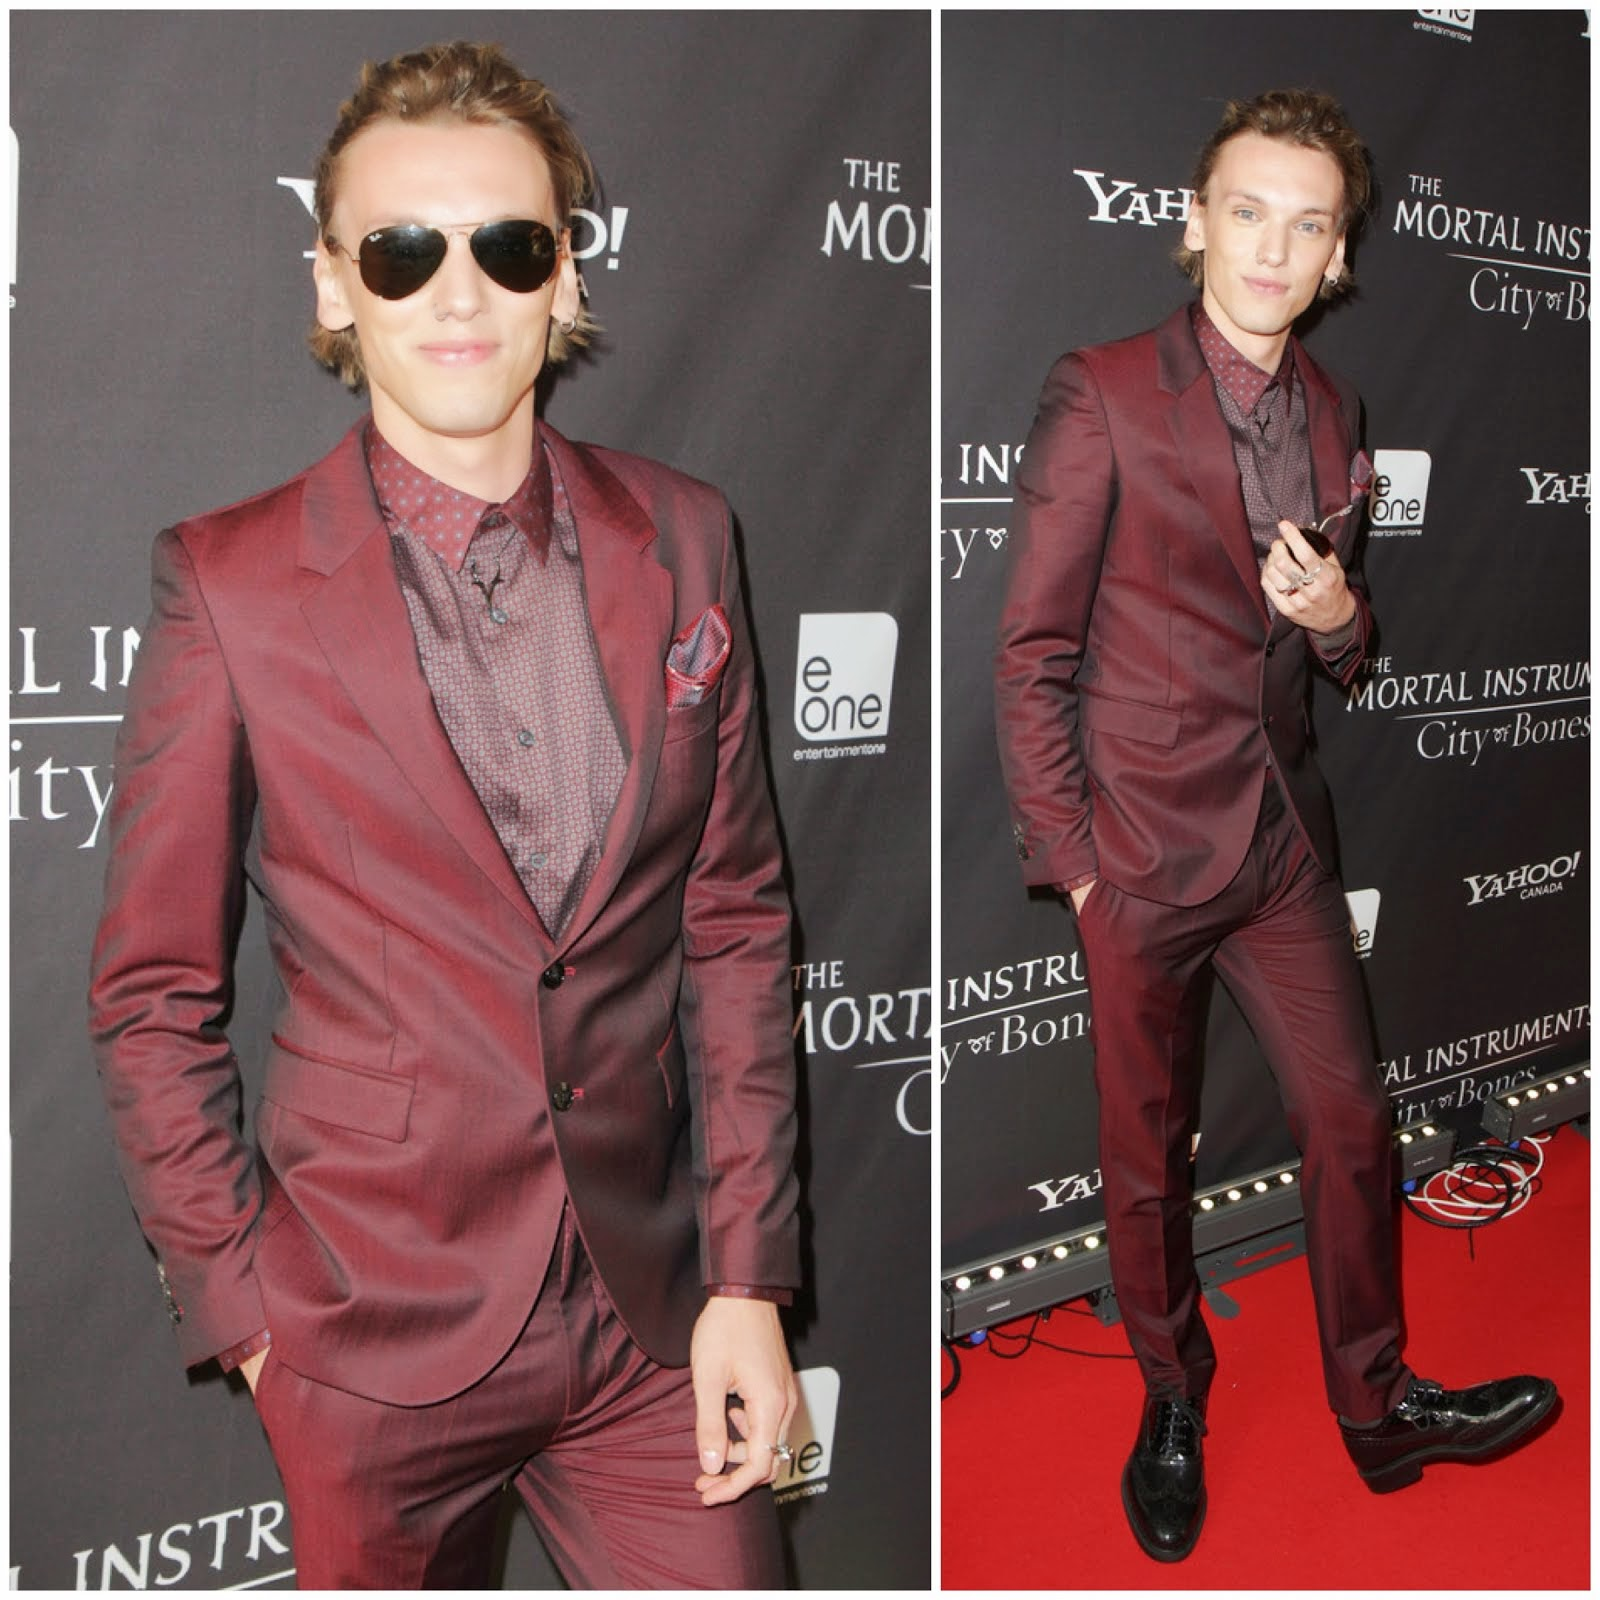 00O00 Menswear Blog: Jamie Campbell Bower in McQ Alexander McQueen - 'The Mortal Instruments' Canadian premiere August 2013